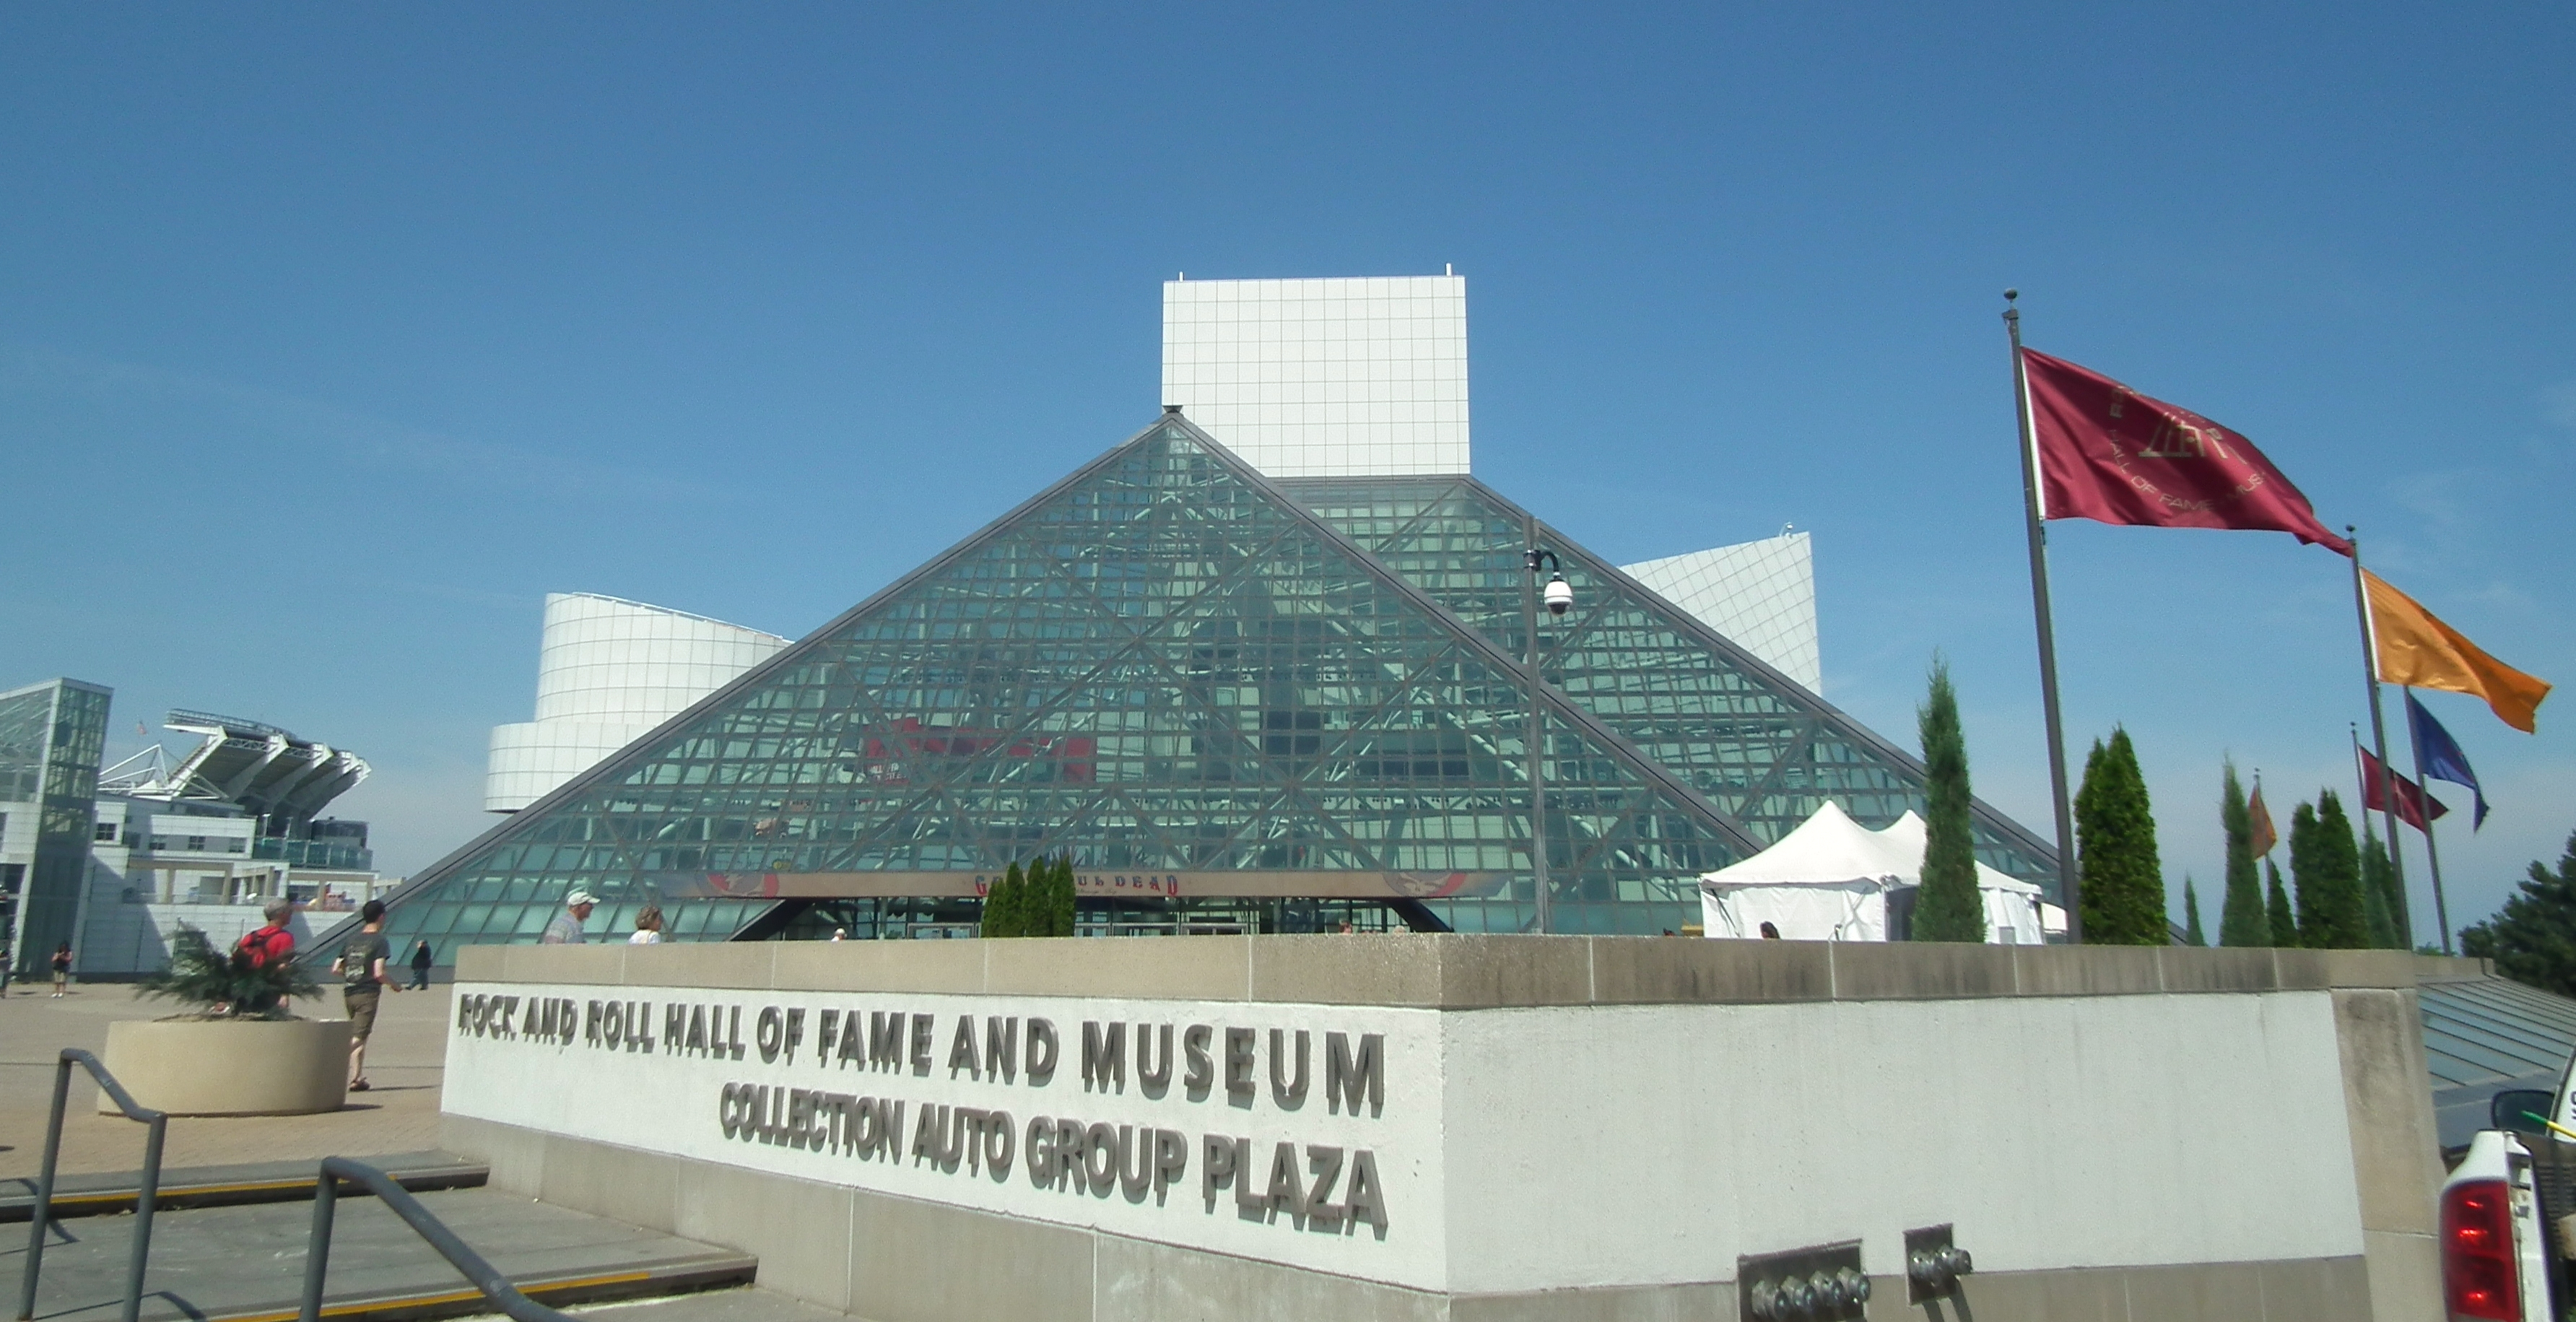 File:Rock and Roll Hall of Fame and Museum.jpg - Wikimedia Commons